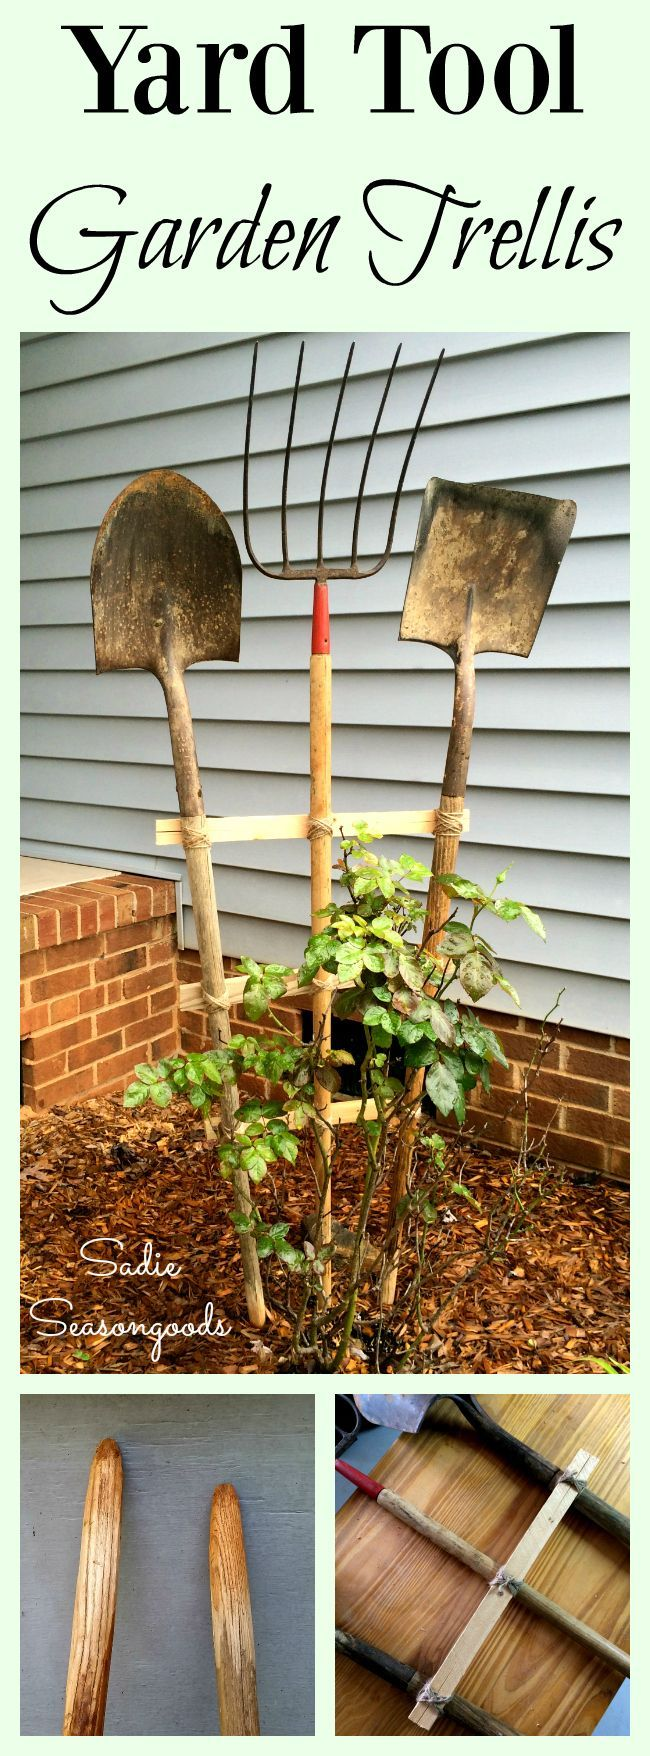 Here's the perfect use for those vintage yard and garden tools that you don't use but couldn't bear to part with- a DIY Garden Trellis for your yard! Great way to upcycle and repurpose your grandfather's farm tools into a great piece of garden decor that is wonderfully functional! #SadieSeasongoods